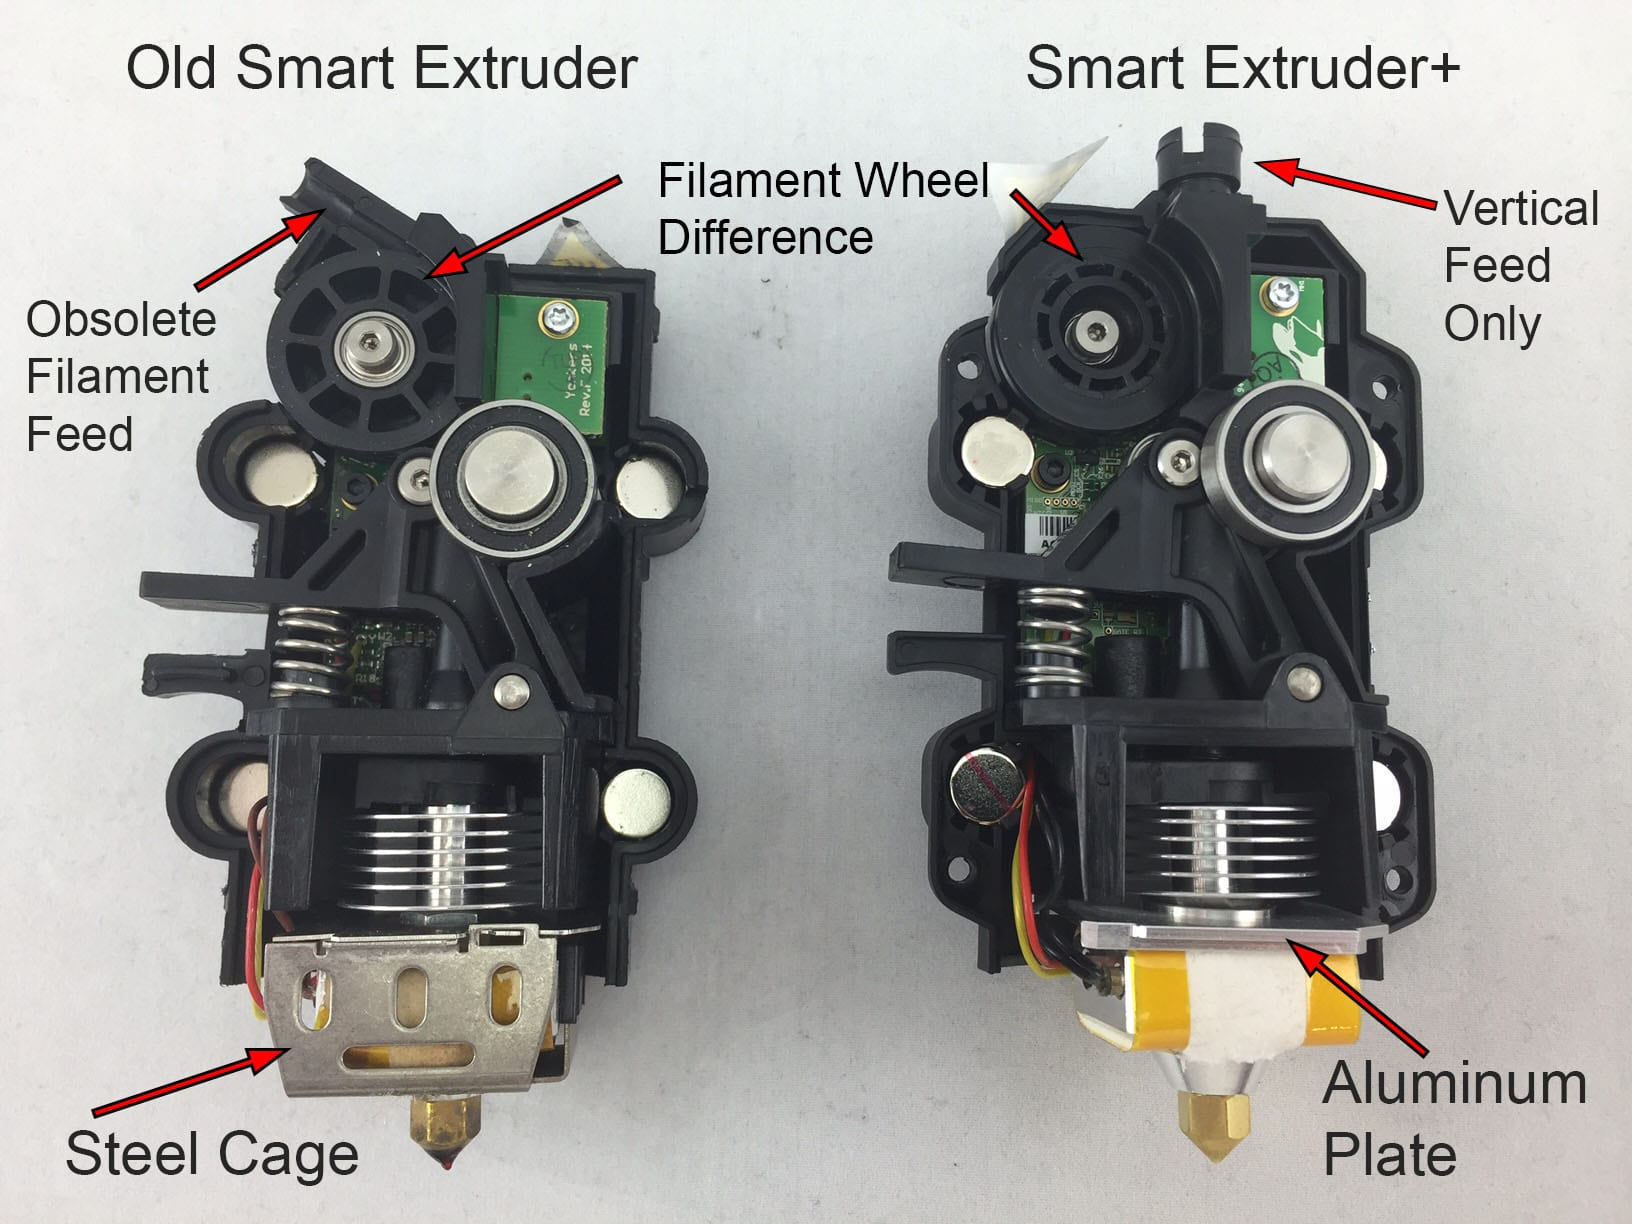 MakerBot Smart Extruder Review, How Different is it?